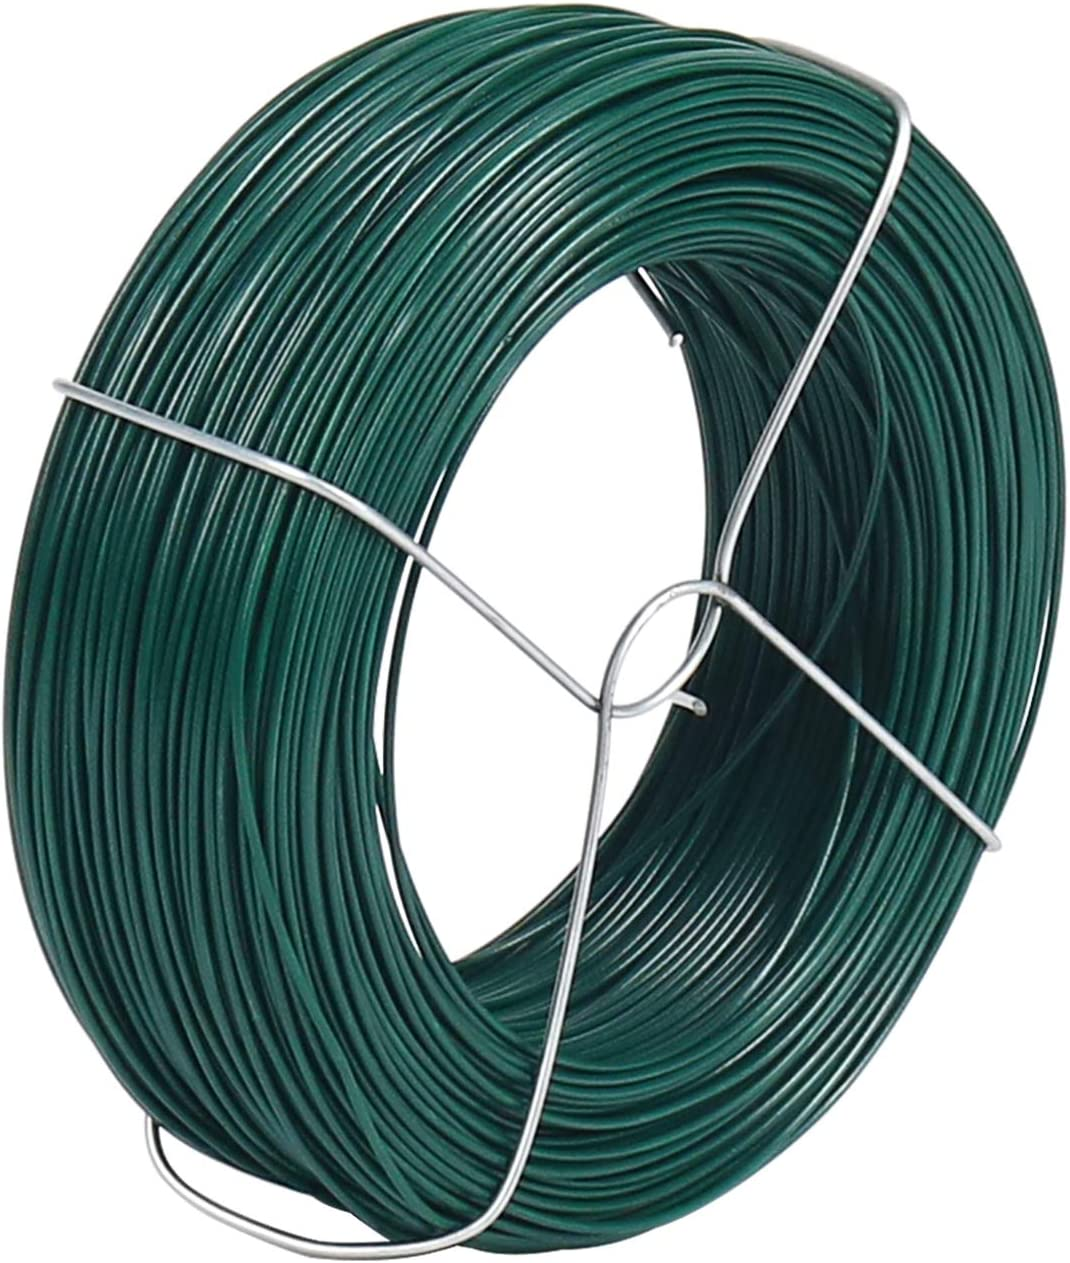 328 Feet Plant Twist Tie Plastic Coated Soft Garden Metal Wire 1mm Thin for Gardening, Home, Office (Green)